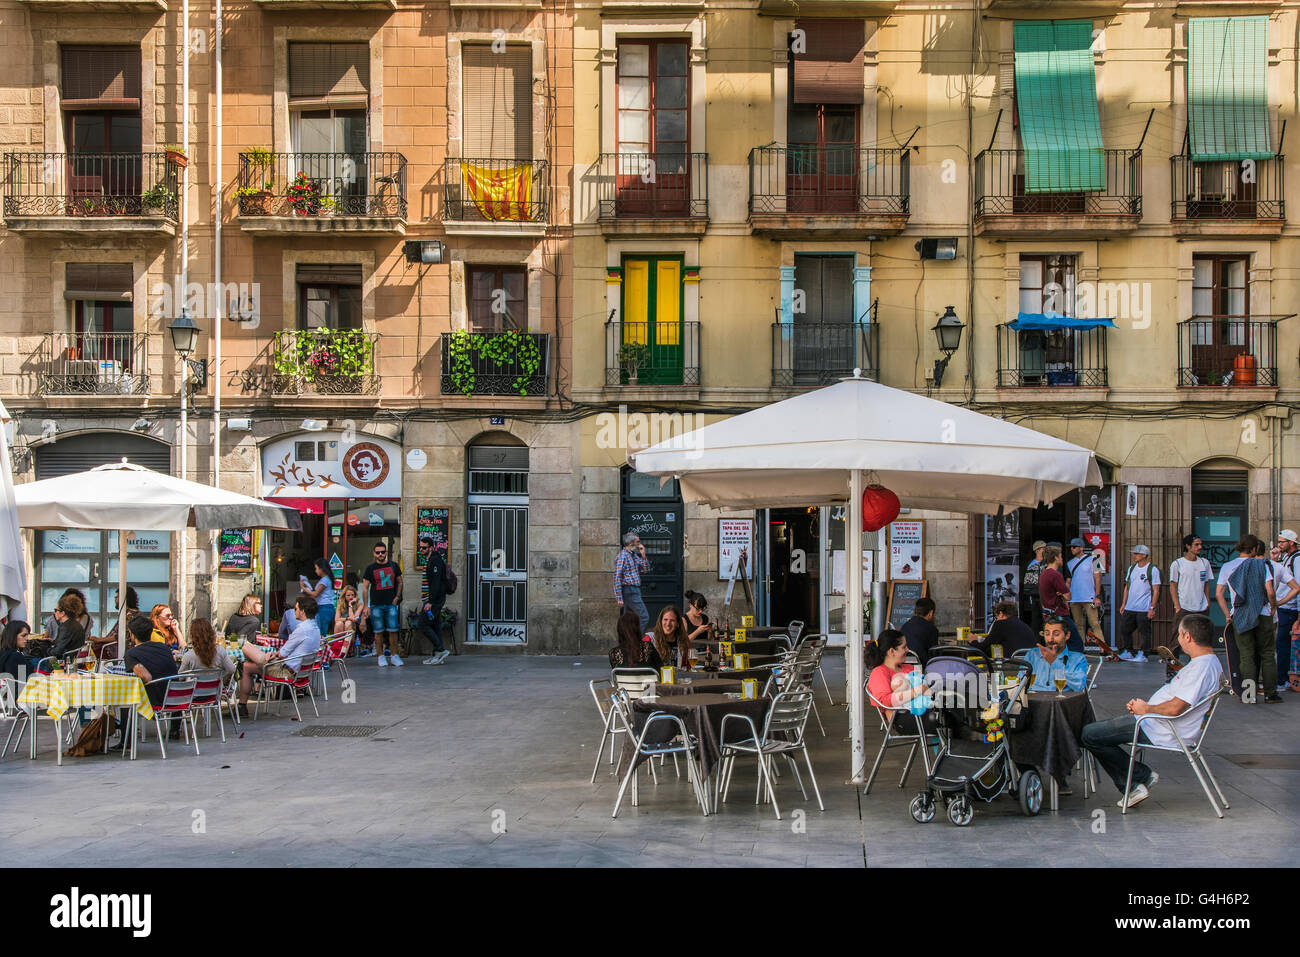 Outdoor cafe in Raval neighborhood, Barcelona, Catalonia, Spain - Stock Image